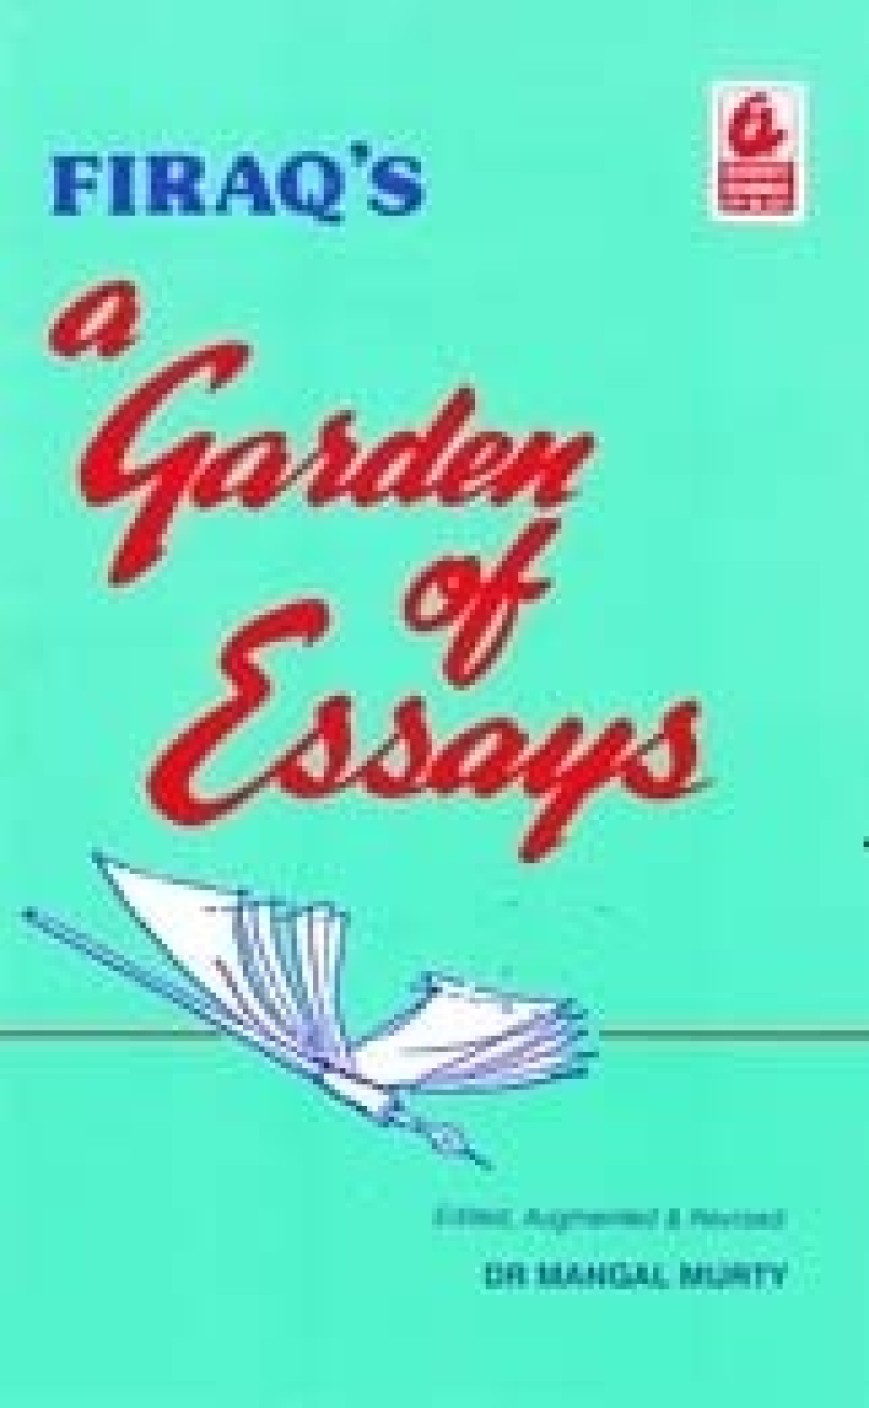 garden essays firaq gorakhpuri Firaq gorakhpuri (see also  khurram nagar garden, pant nagar, lucknow226022  'dard-e-dil likhoon kabtak' is a collection of essays, memoirs, poetry, and .